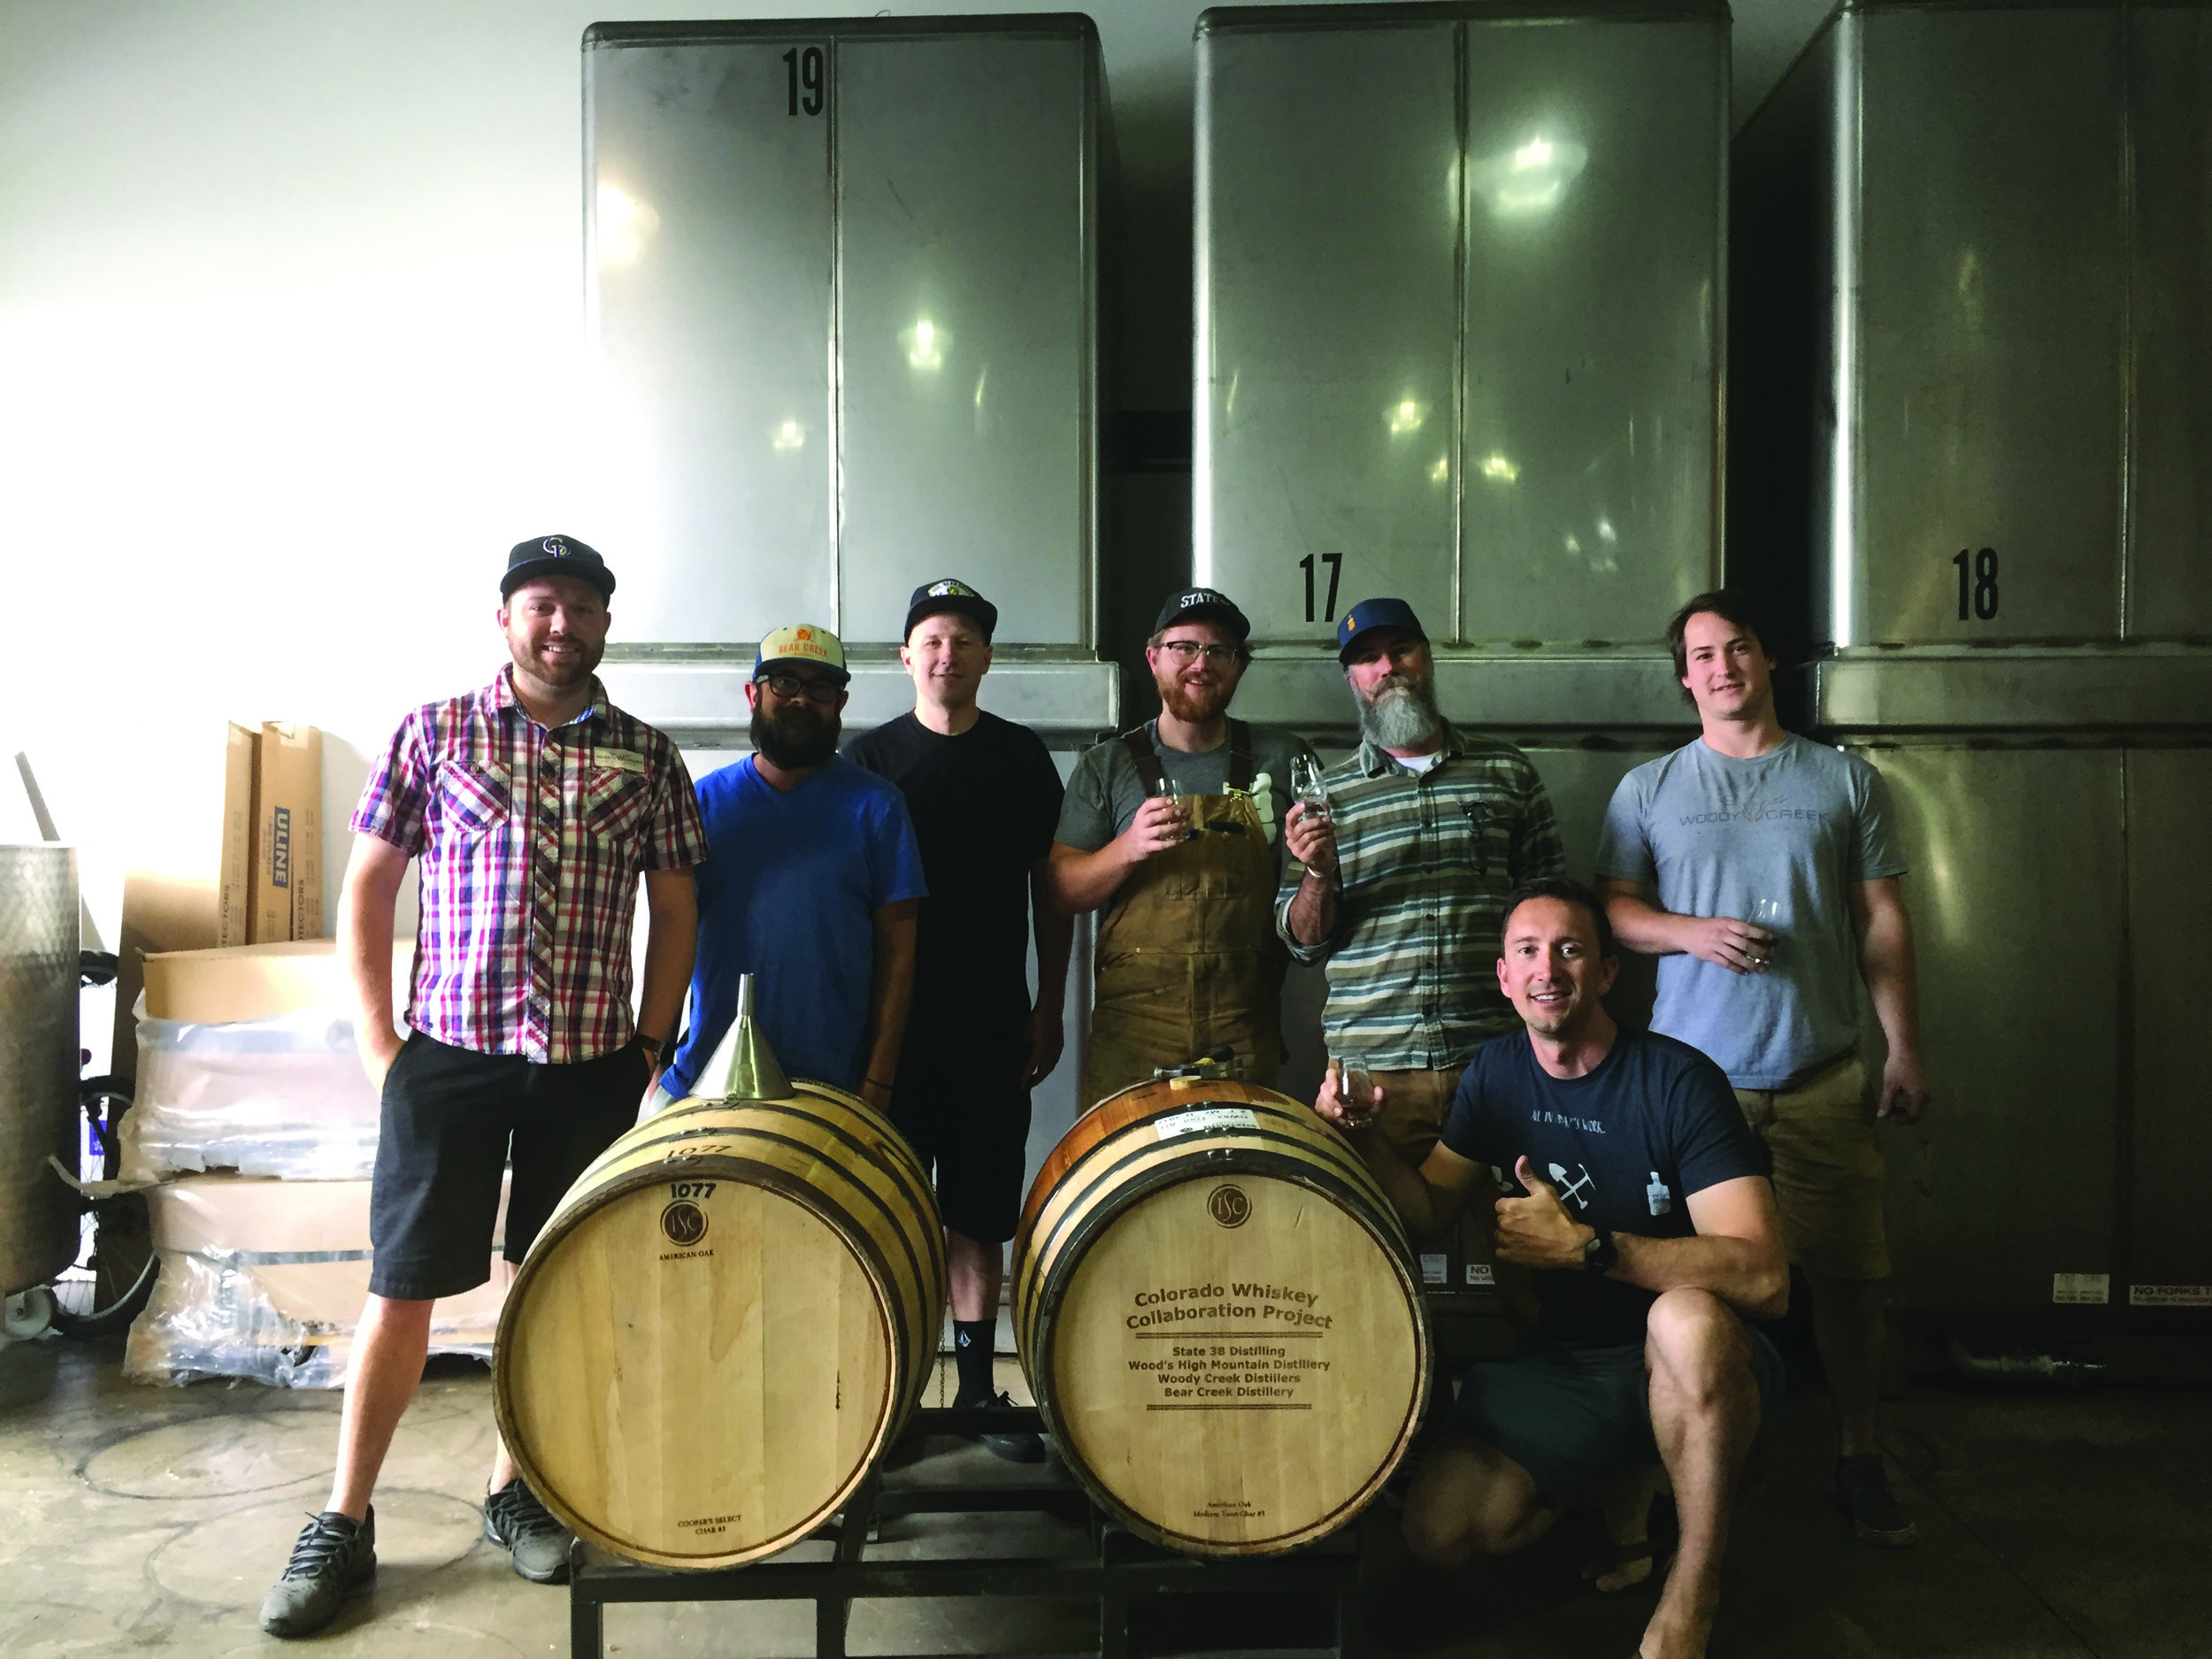 From left standing, Woody Creek Distiller's lead distiller Sean Simpson, Bear Creek Distillery owners Jay Johnson and Jeffrey Dickinson, State 38 Distilling's Joel Randall, Wood's High Mountain Distillery owner P.T. Woods and Woody Creek distiller Blaine Hudson. Front, State 38 Distilling owner Sean Smiley. Photo courtesy State 38 Distilling